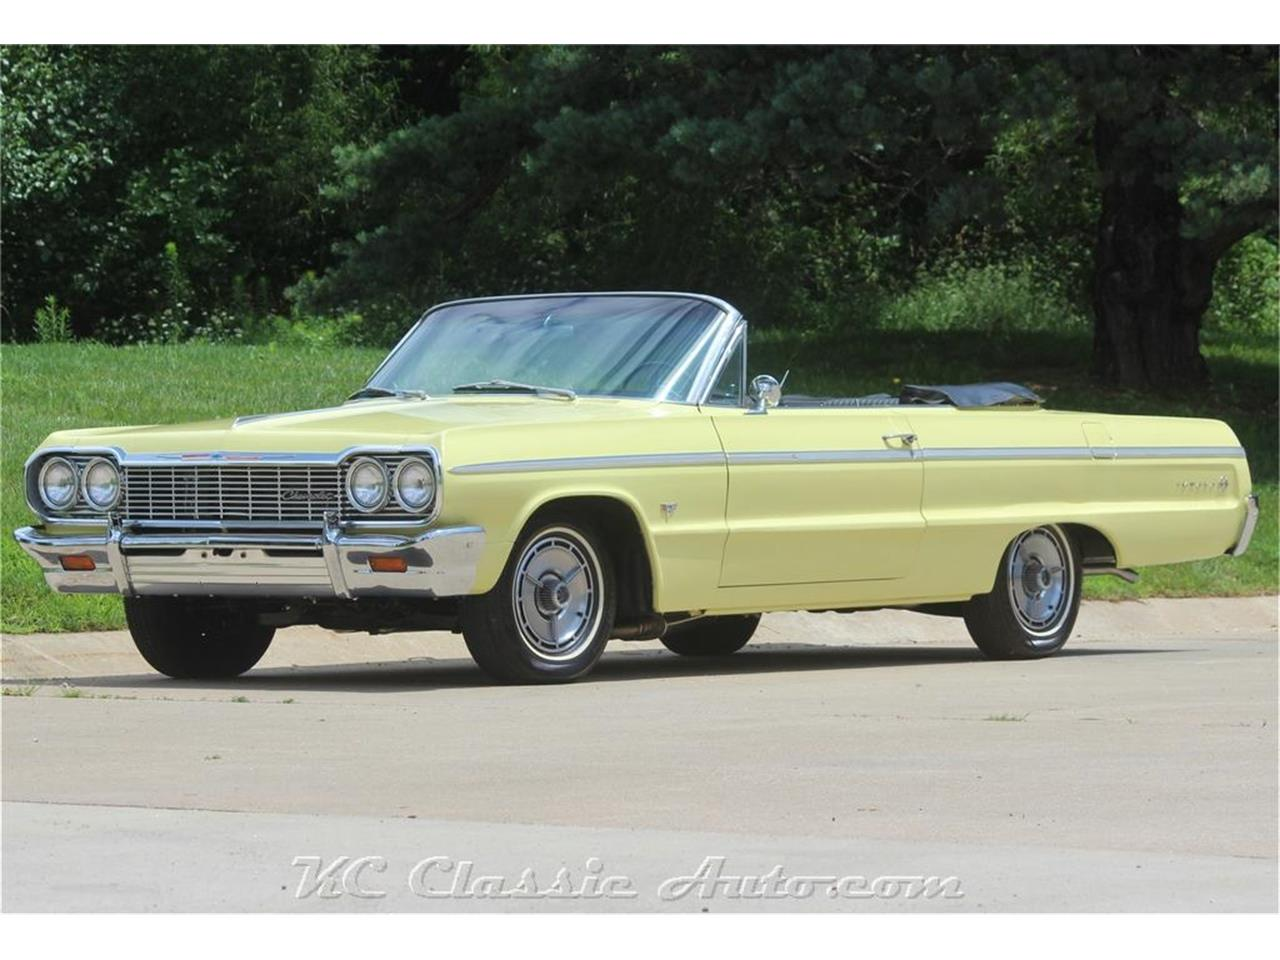 1964 Chevrolet Impala SS (CC-1247899) for sale in Lenexa, Kansas